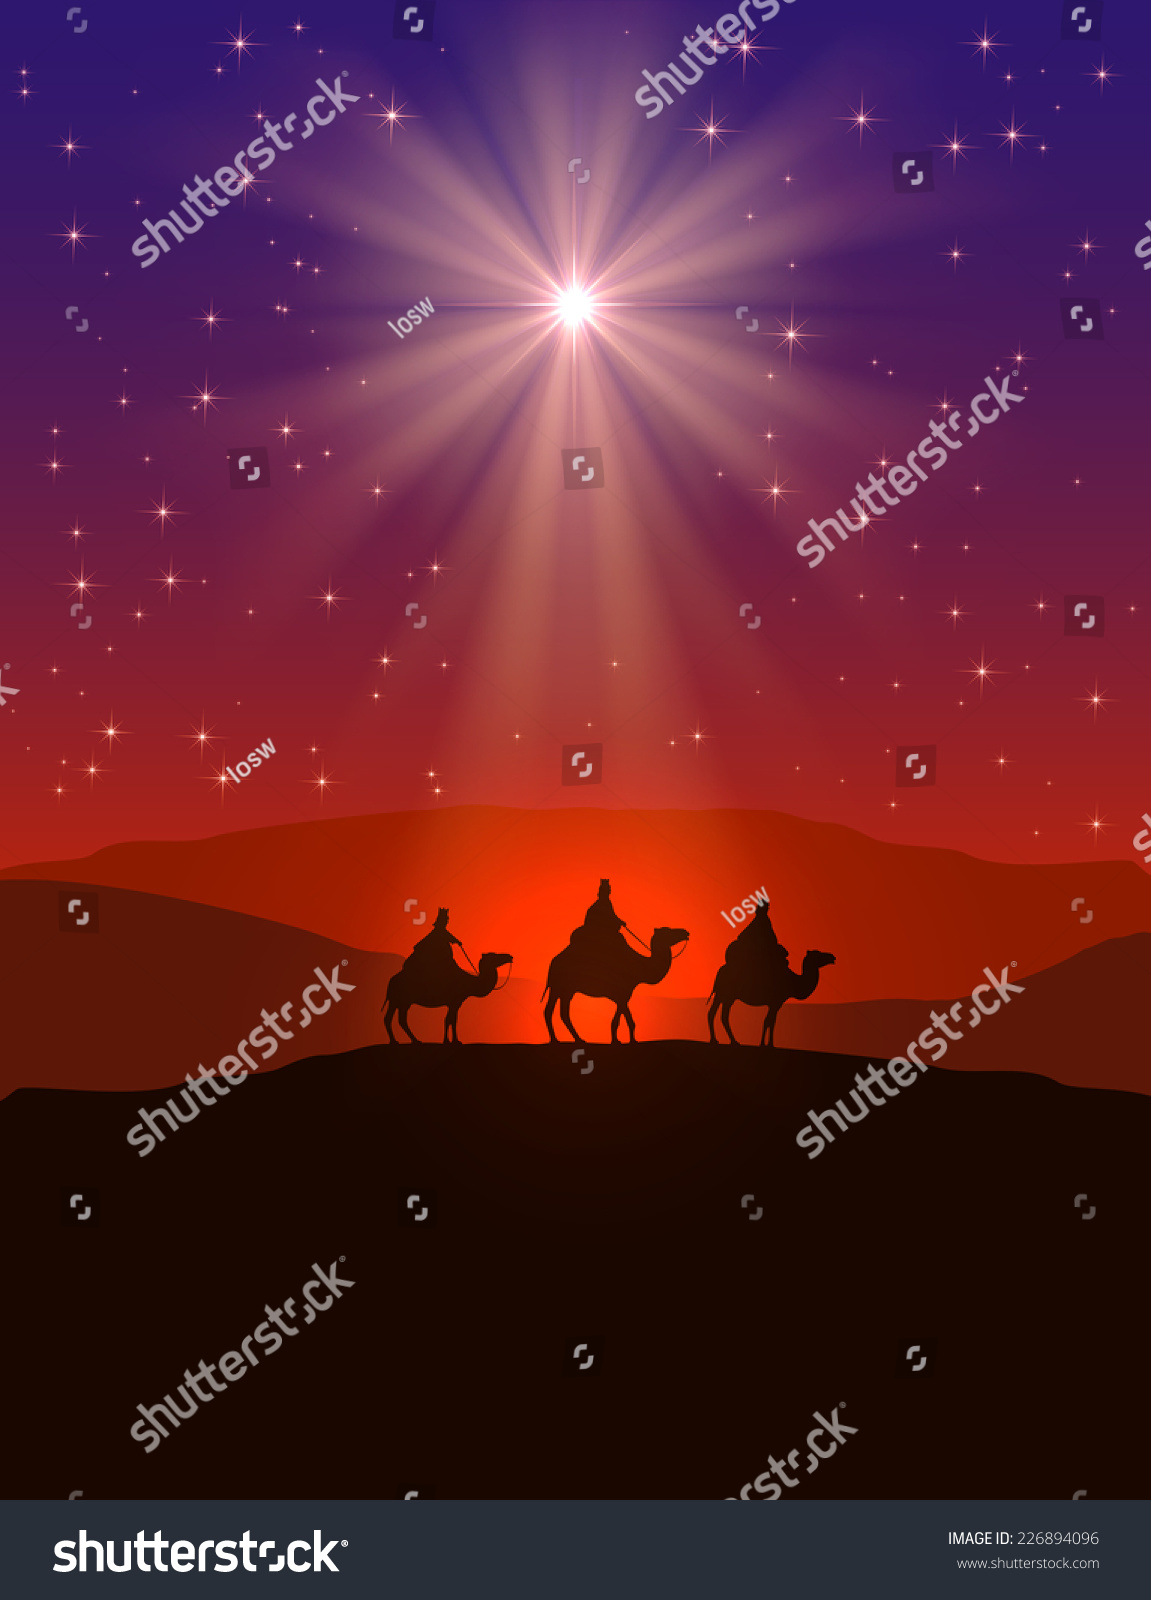 Christian Christmas Background With Shining Star On Night ...